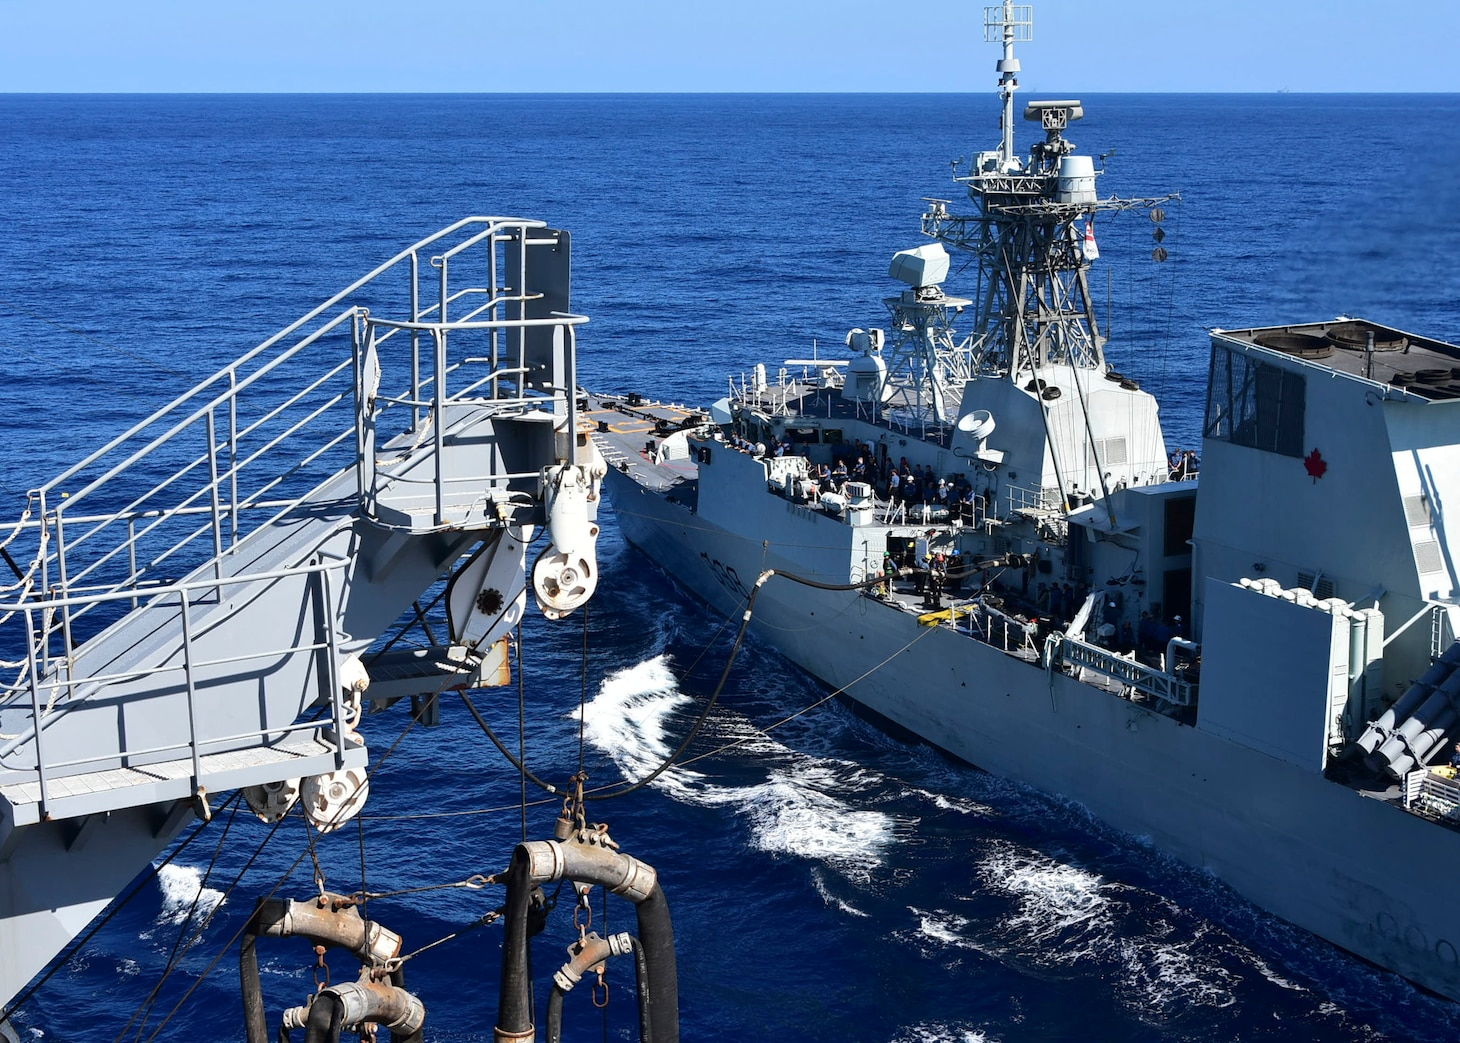 PHILIPPINE SEA (Oct. 25, 2020) – The U.S. Navy Military Sealift Command Henry J. Kaiser-class fleet replenishment oiler USNS Tippecanoe (T-AO 199), left, refuels the Royal Canadian Navy Halifax-class frigate HMCS Winnipeg (FFH 338) during an underway replenishment prior to participating in Keen Sword. Keen Sword is a joint, bilateral, biennial field-training exercise involving U.S. military and Japan Self-Defense Force personnel, designed to increase combat readiness and interoperability of the Japan-U.S. alliance. (US. Navy photo by Christopher Bosch)